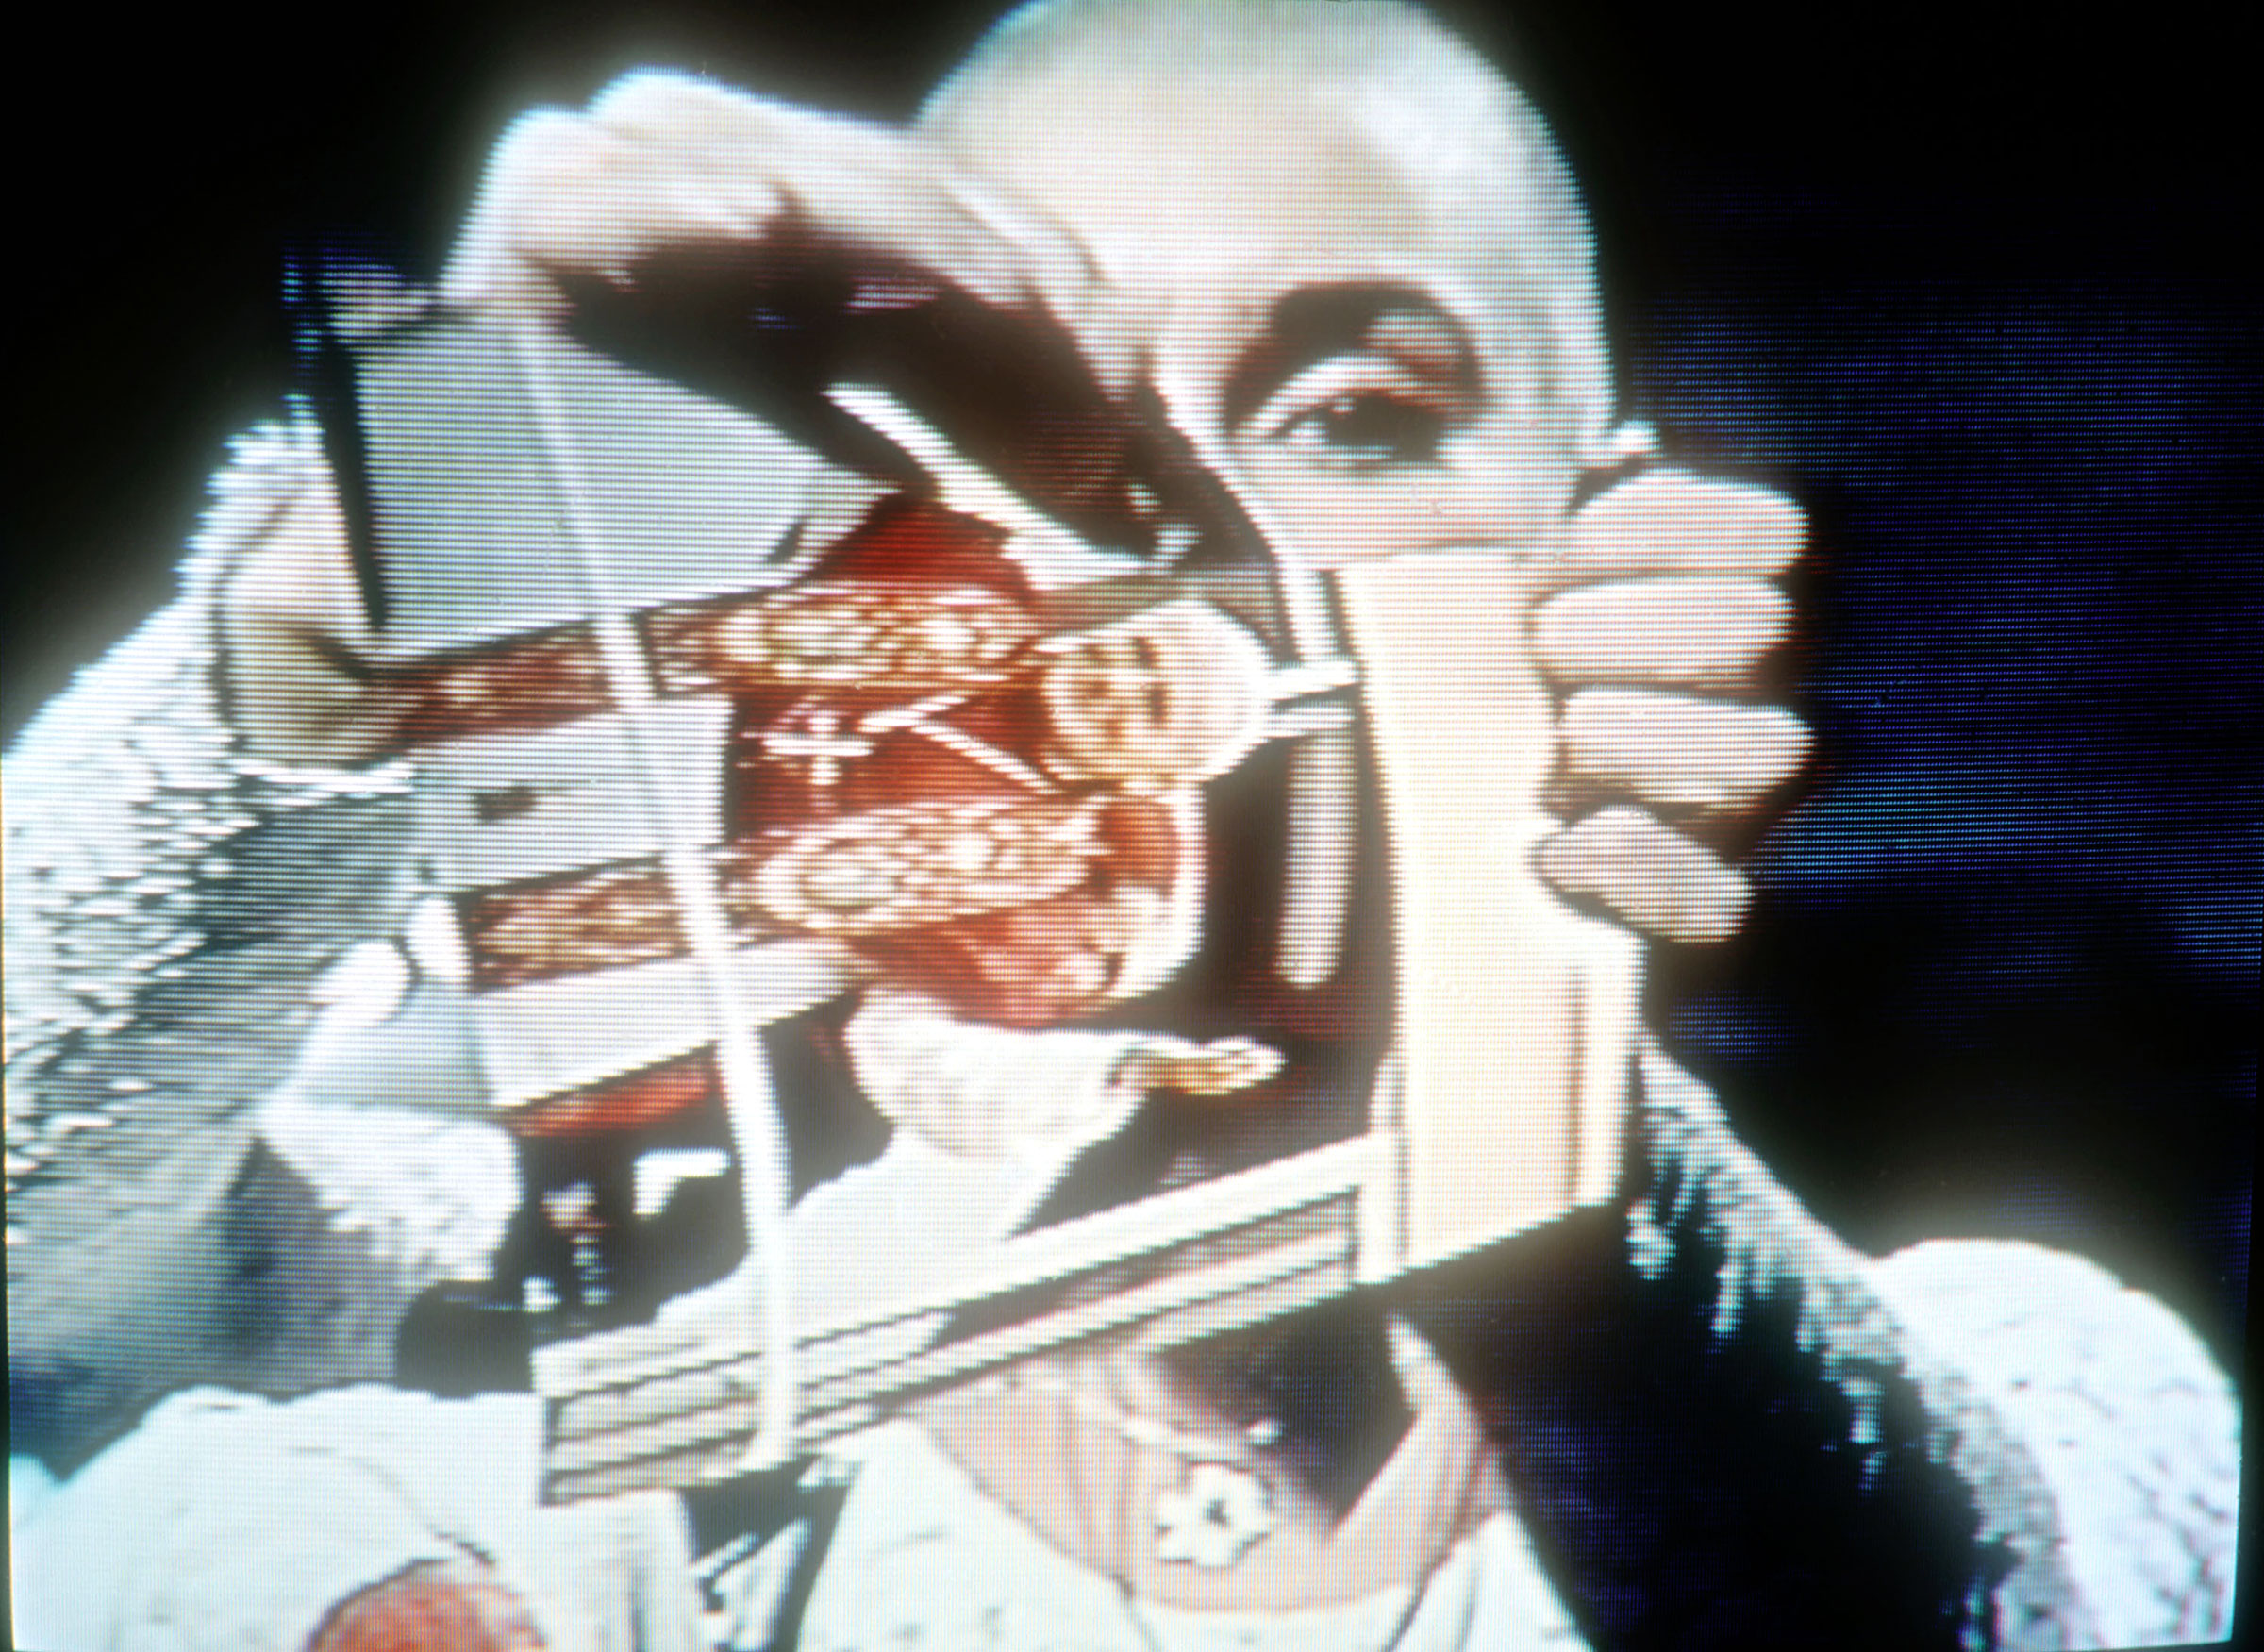 Singer Sinead O'Connor rips up a picture of Pope John Paul II October 3, 1992 on the TV show  Saturday Night Live .